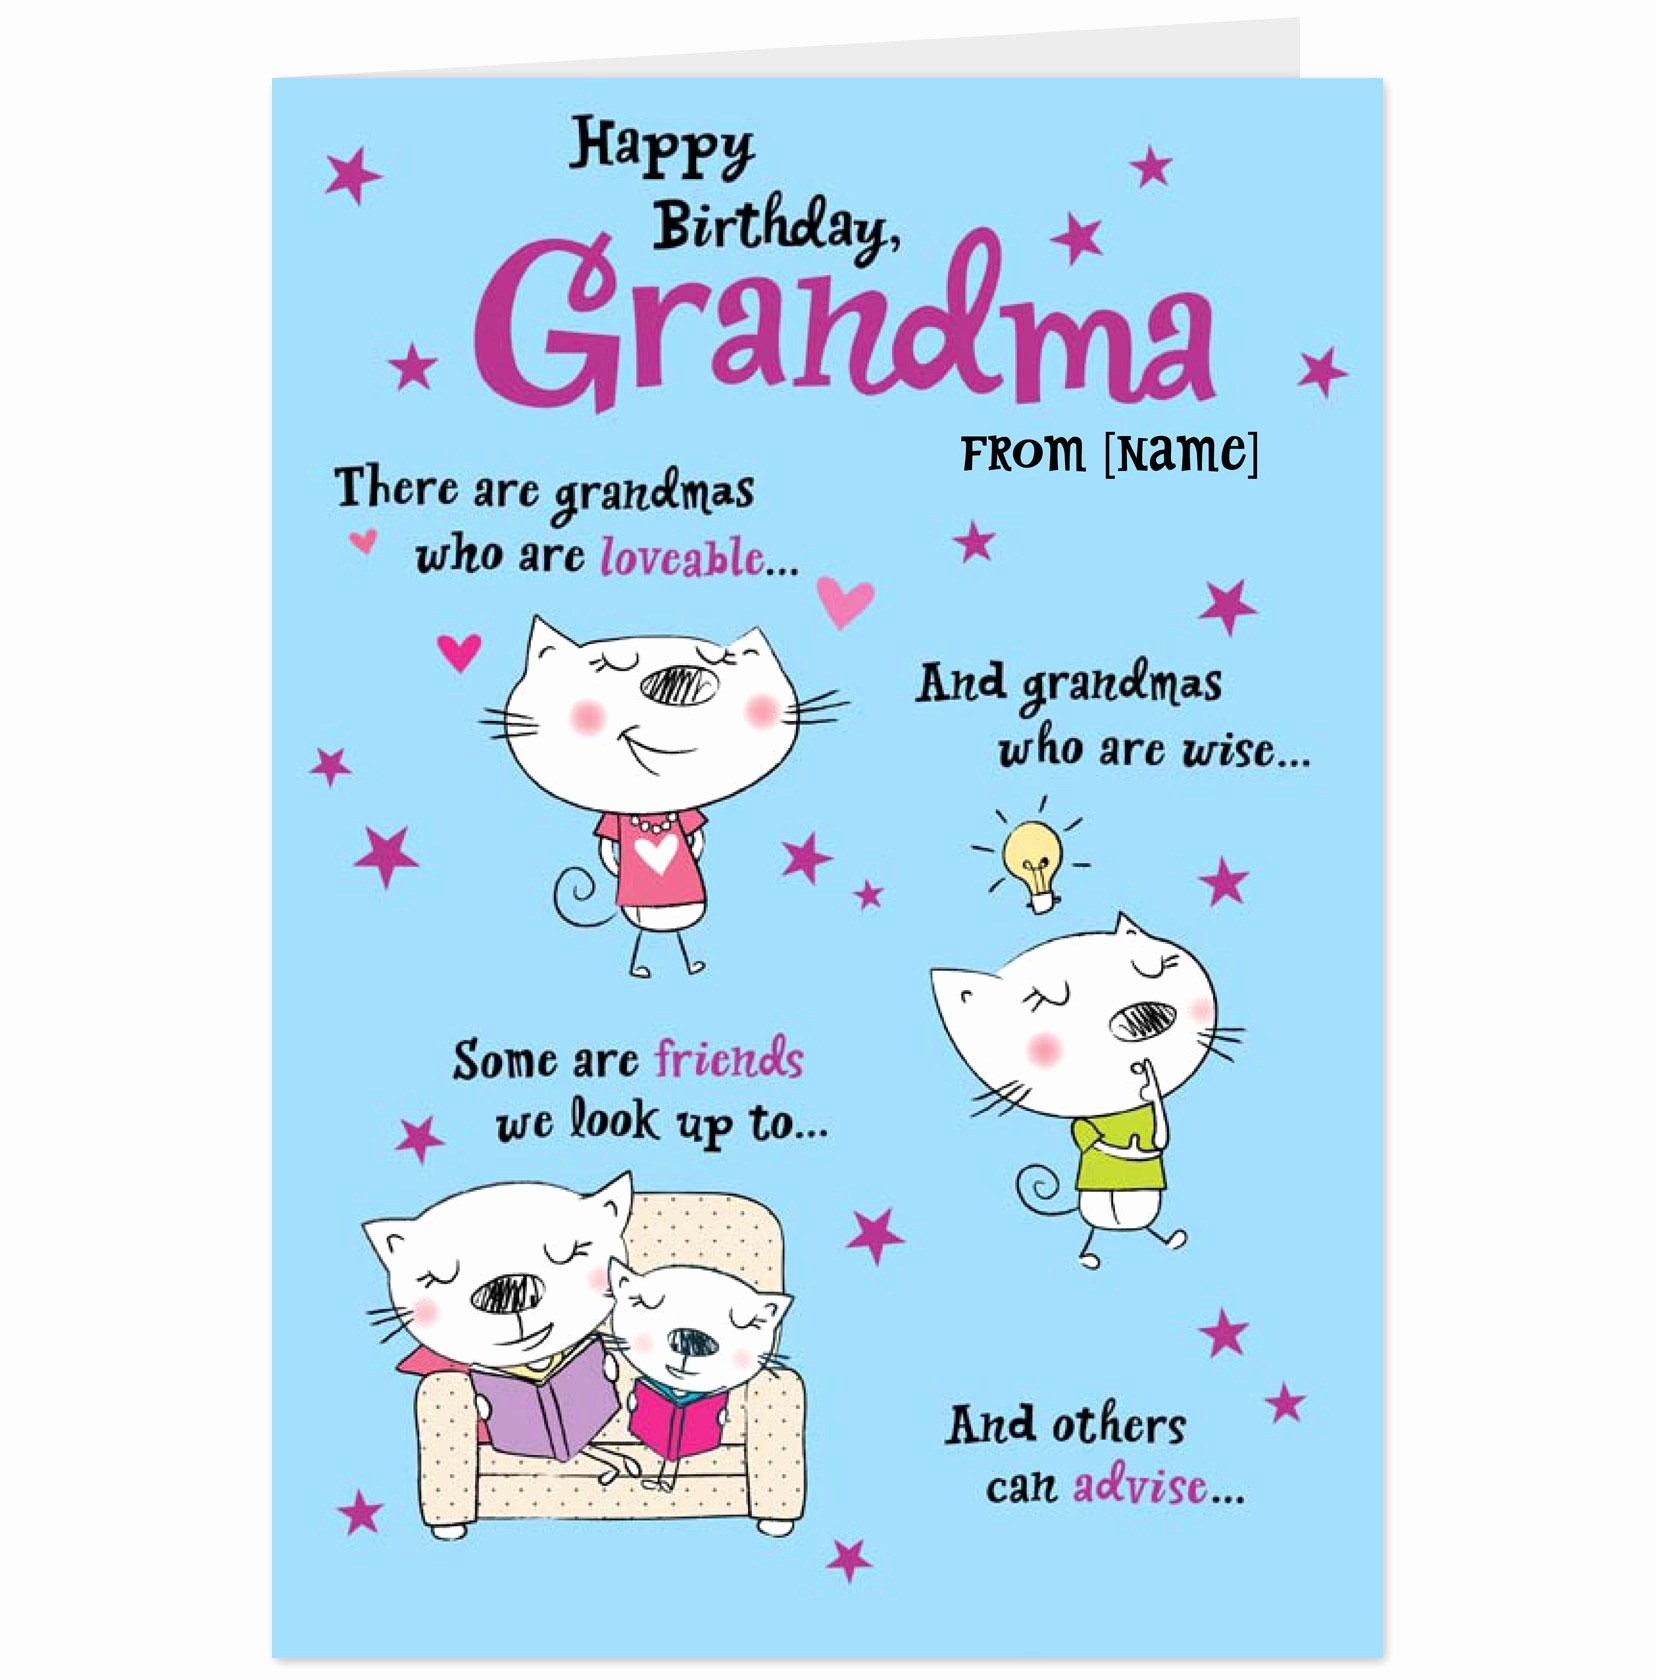 happy birthday grandma card ideas ; what-to-say-in-a-birthday-card-for-grandma-awesome-collection-funny-happy-birthday-grandma-of-what-to-say-in-a-birthday-card-for-grandma